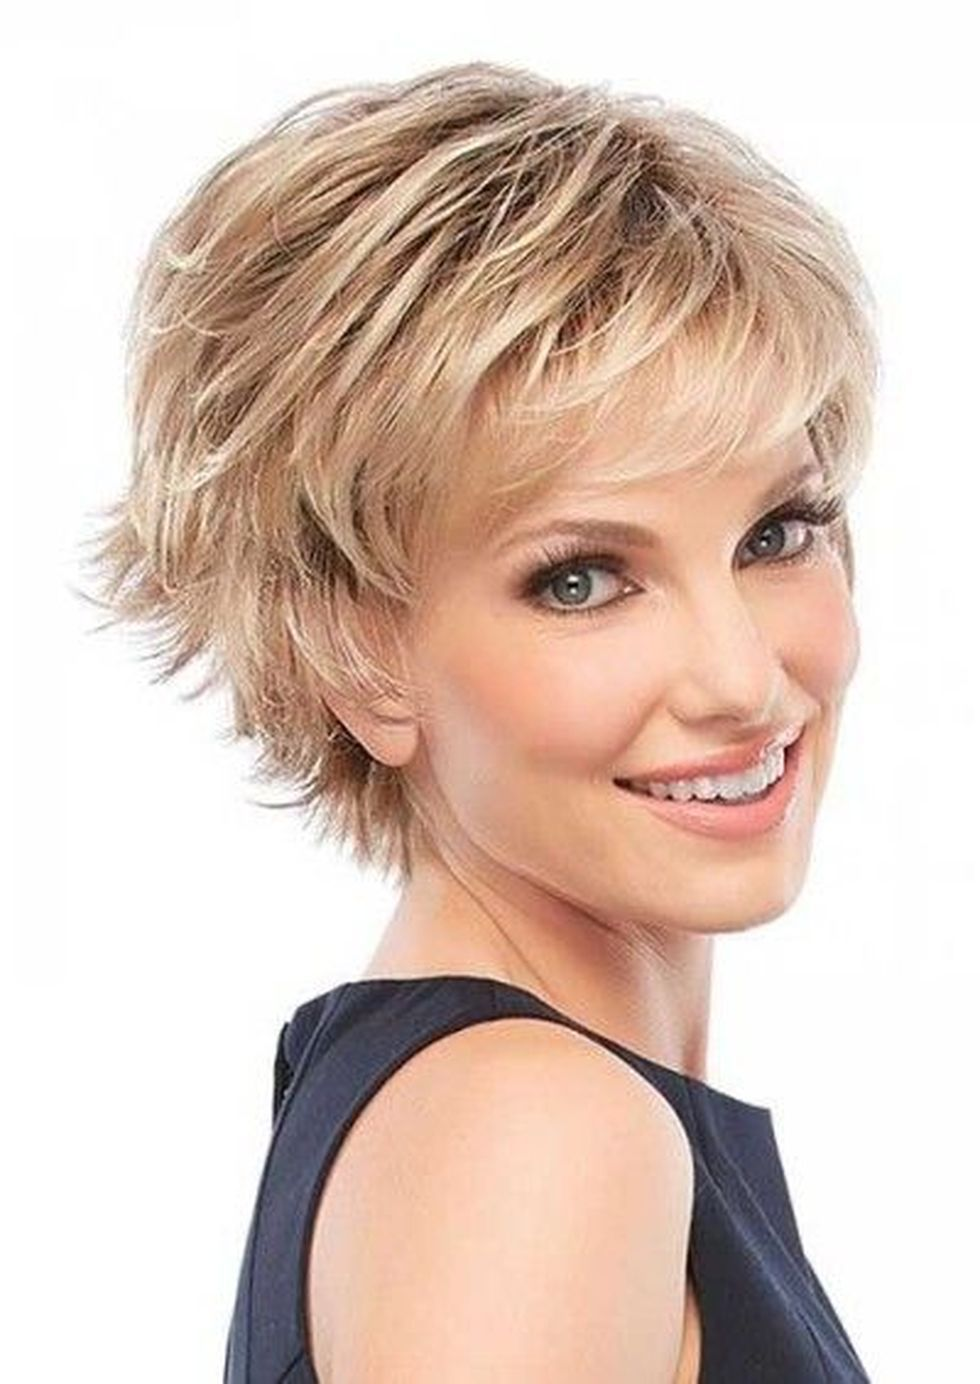 Fabulous over 50 short hairstyle ideas 68